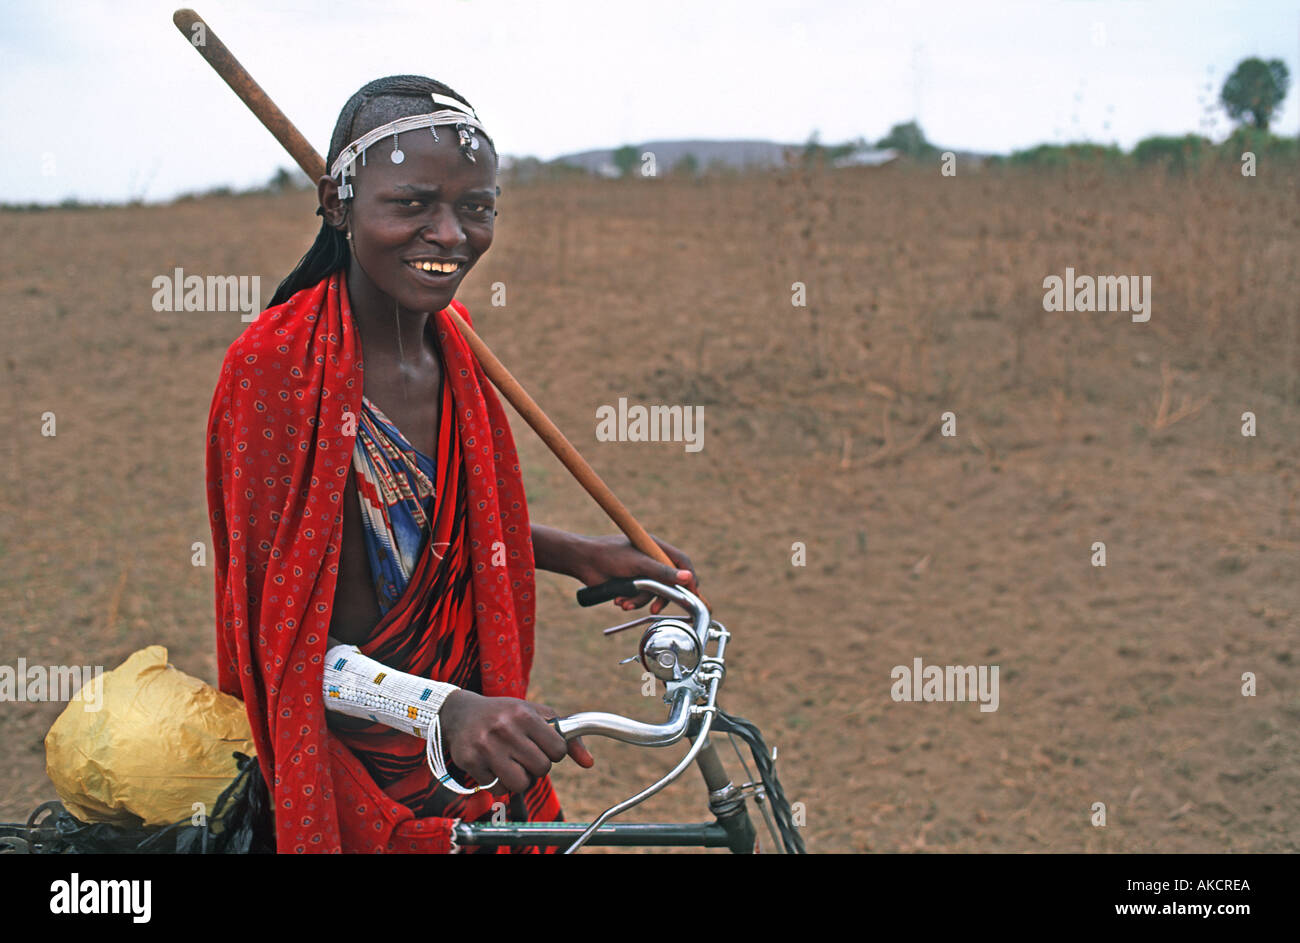 Masai warrior in tribal dress Proud owner of a bicycle Tribal lands nr the cattle market N of Arusha Tanzania E Africa - Stock Image